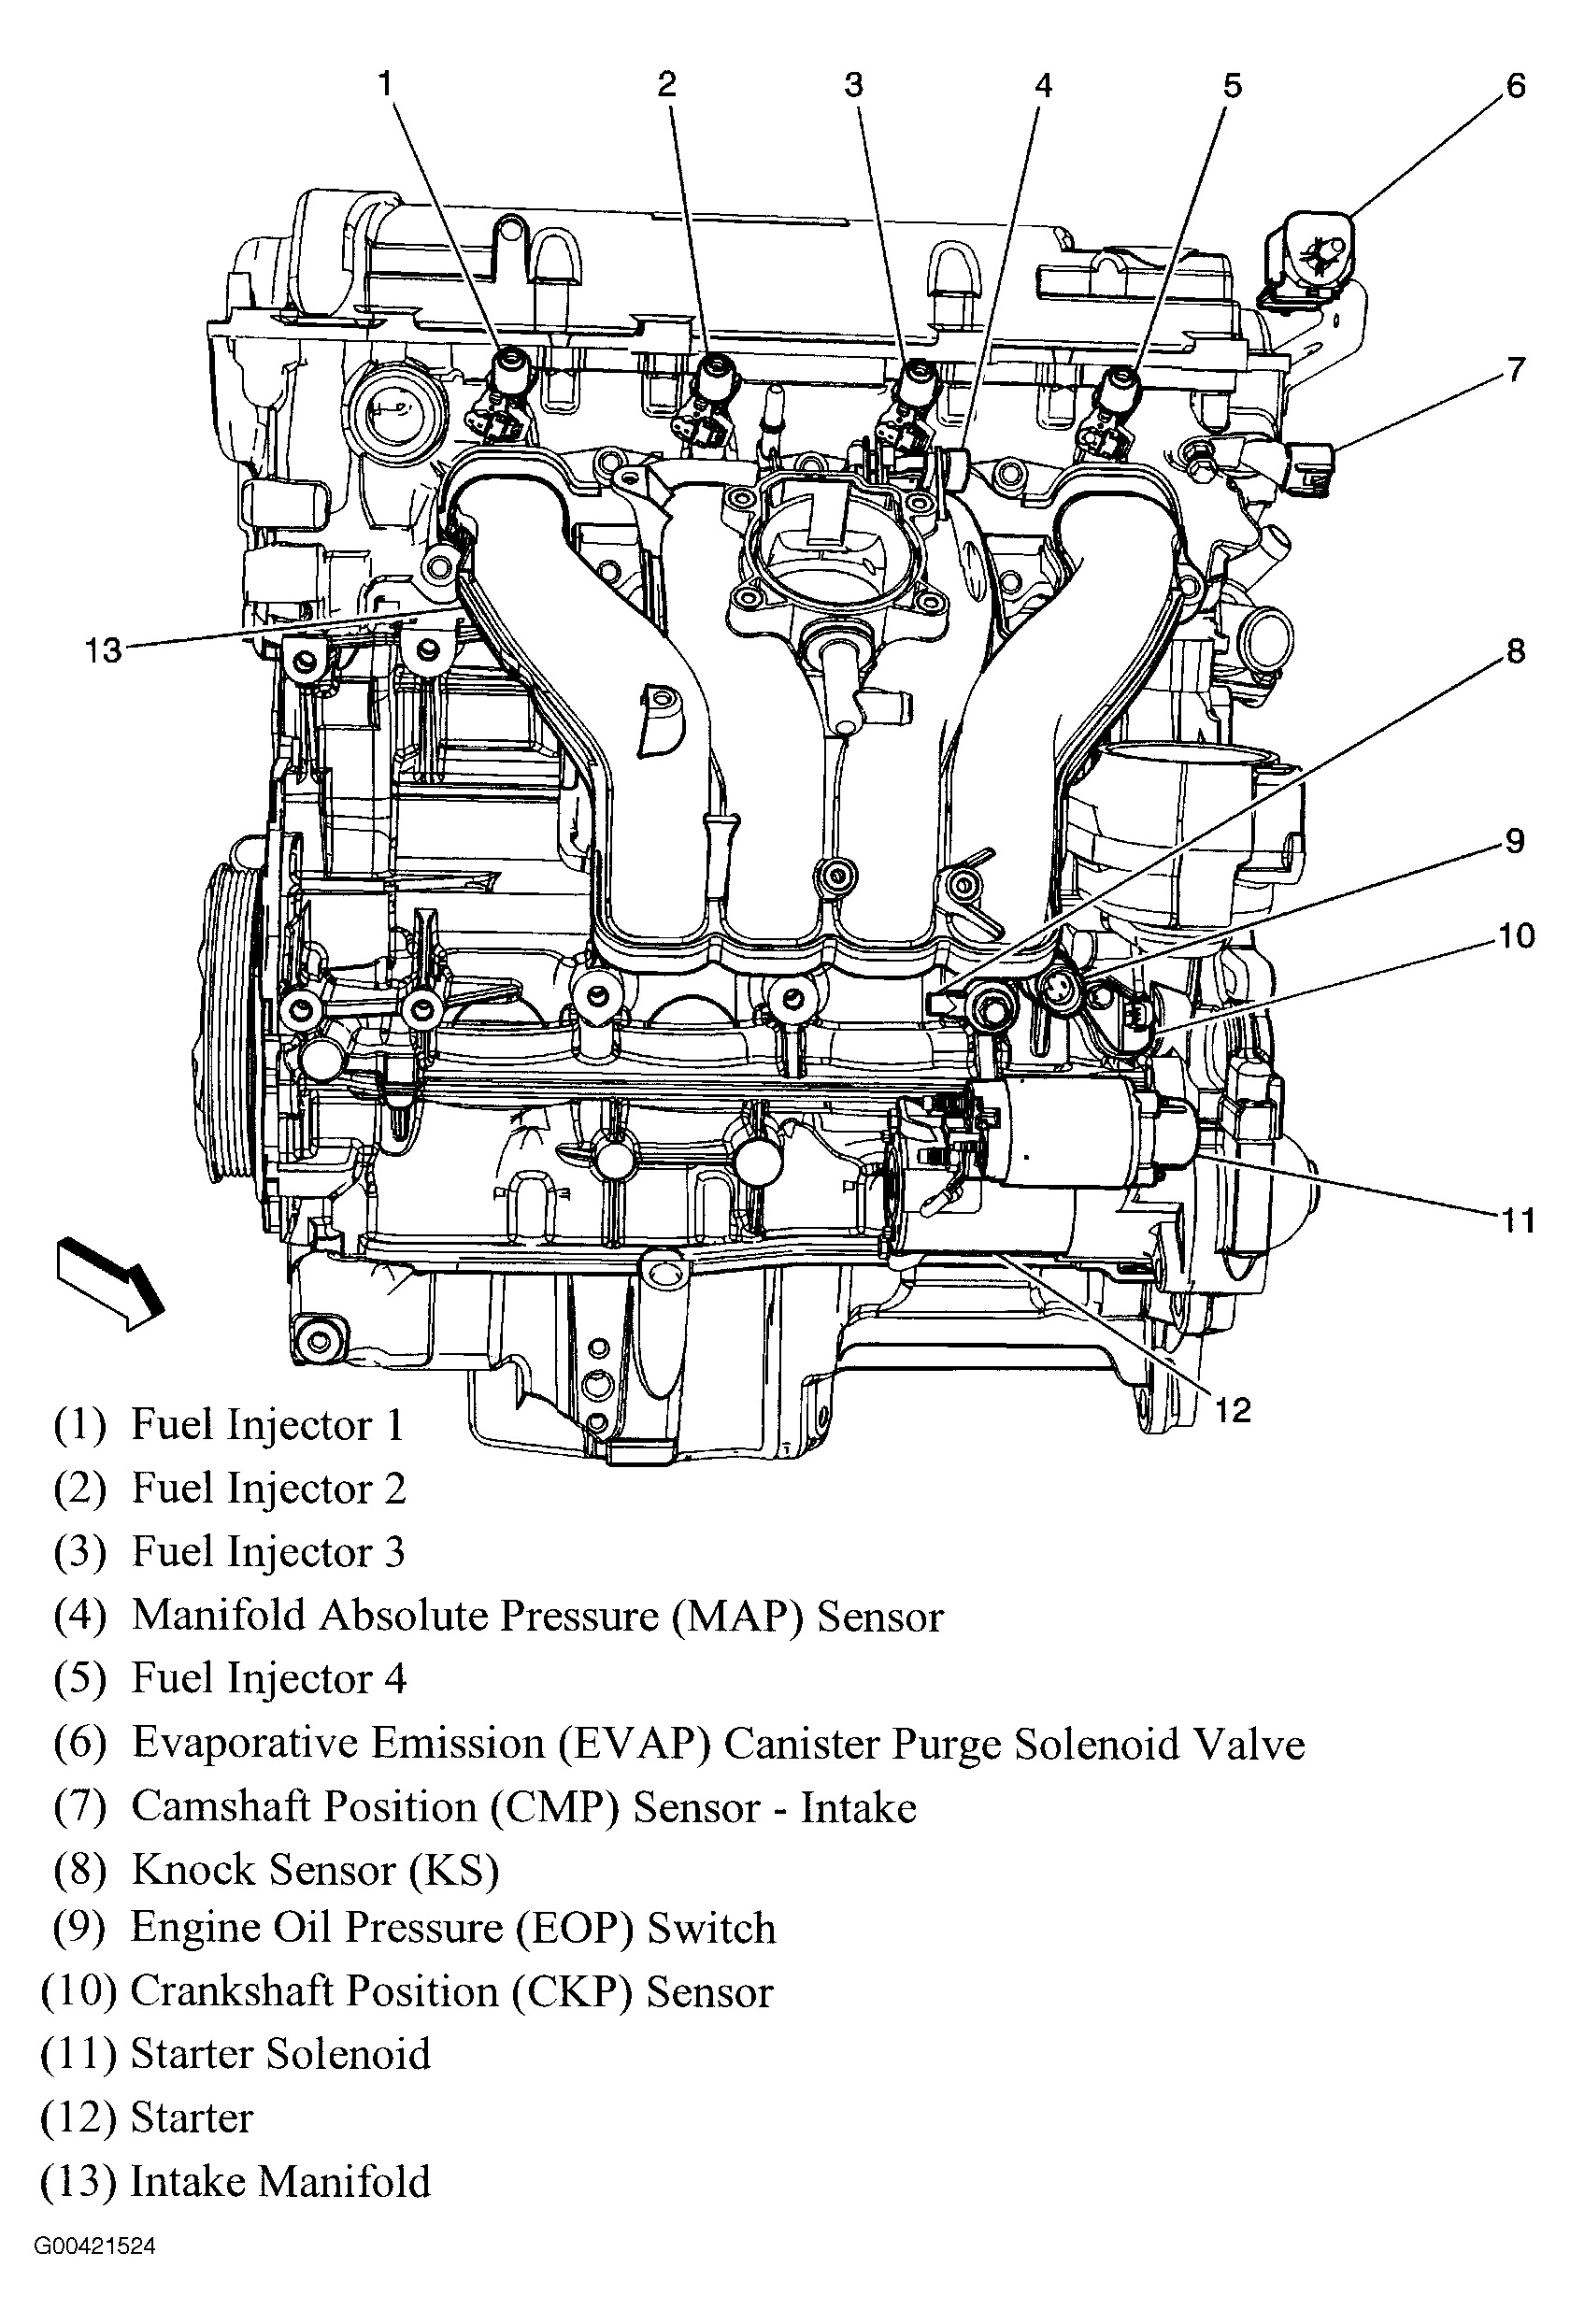 2005 pontiac grand am 3400 motor diagram 2005 engine image for